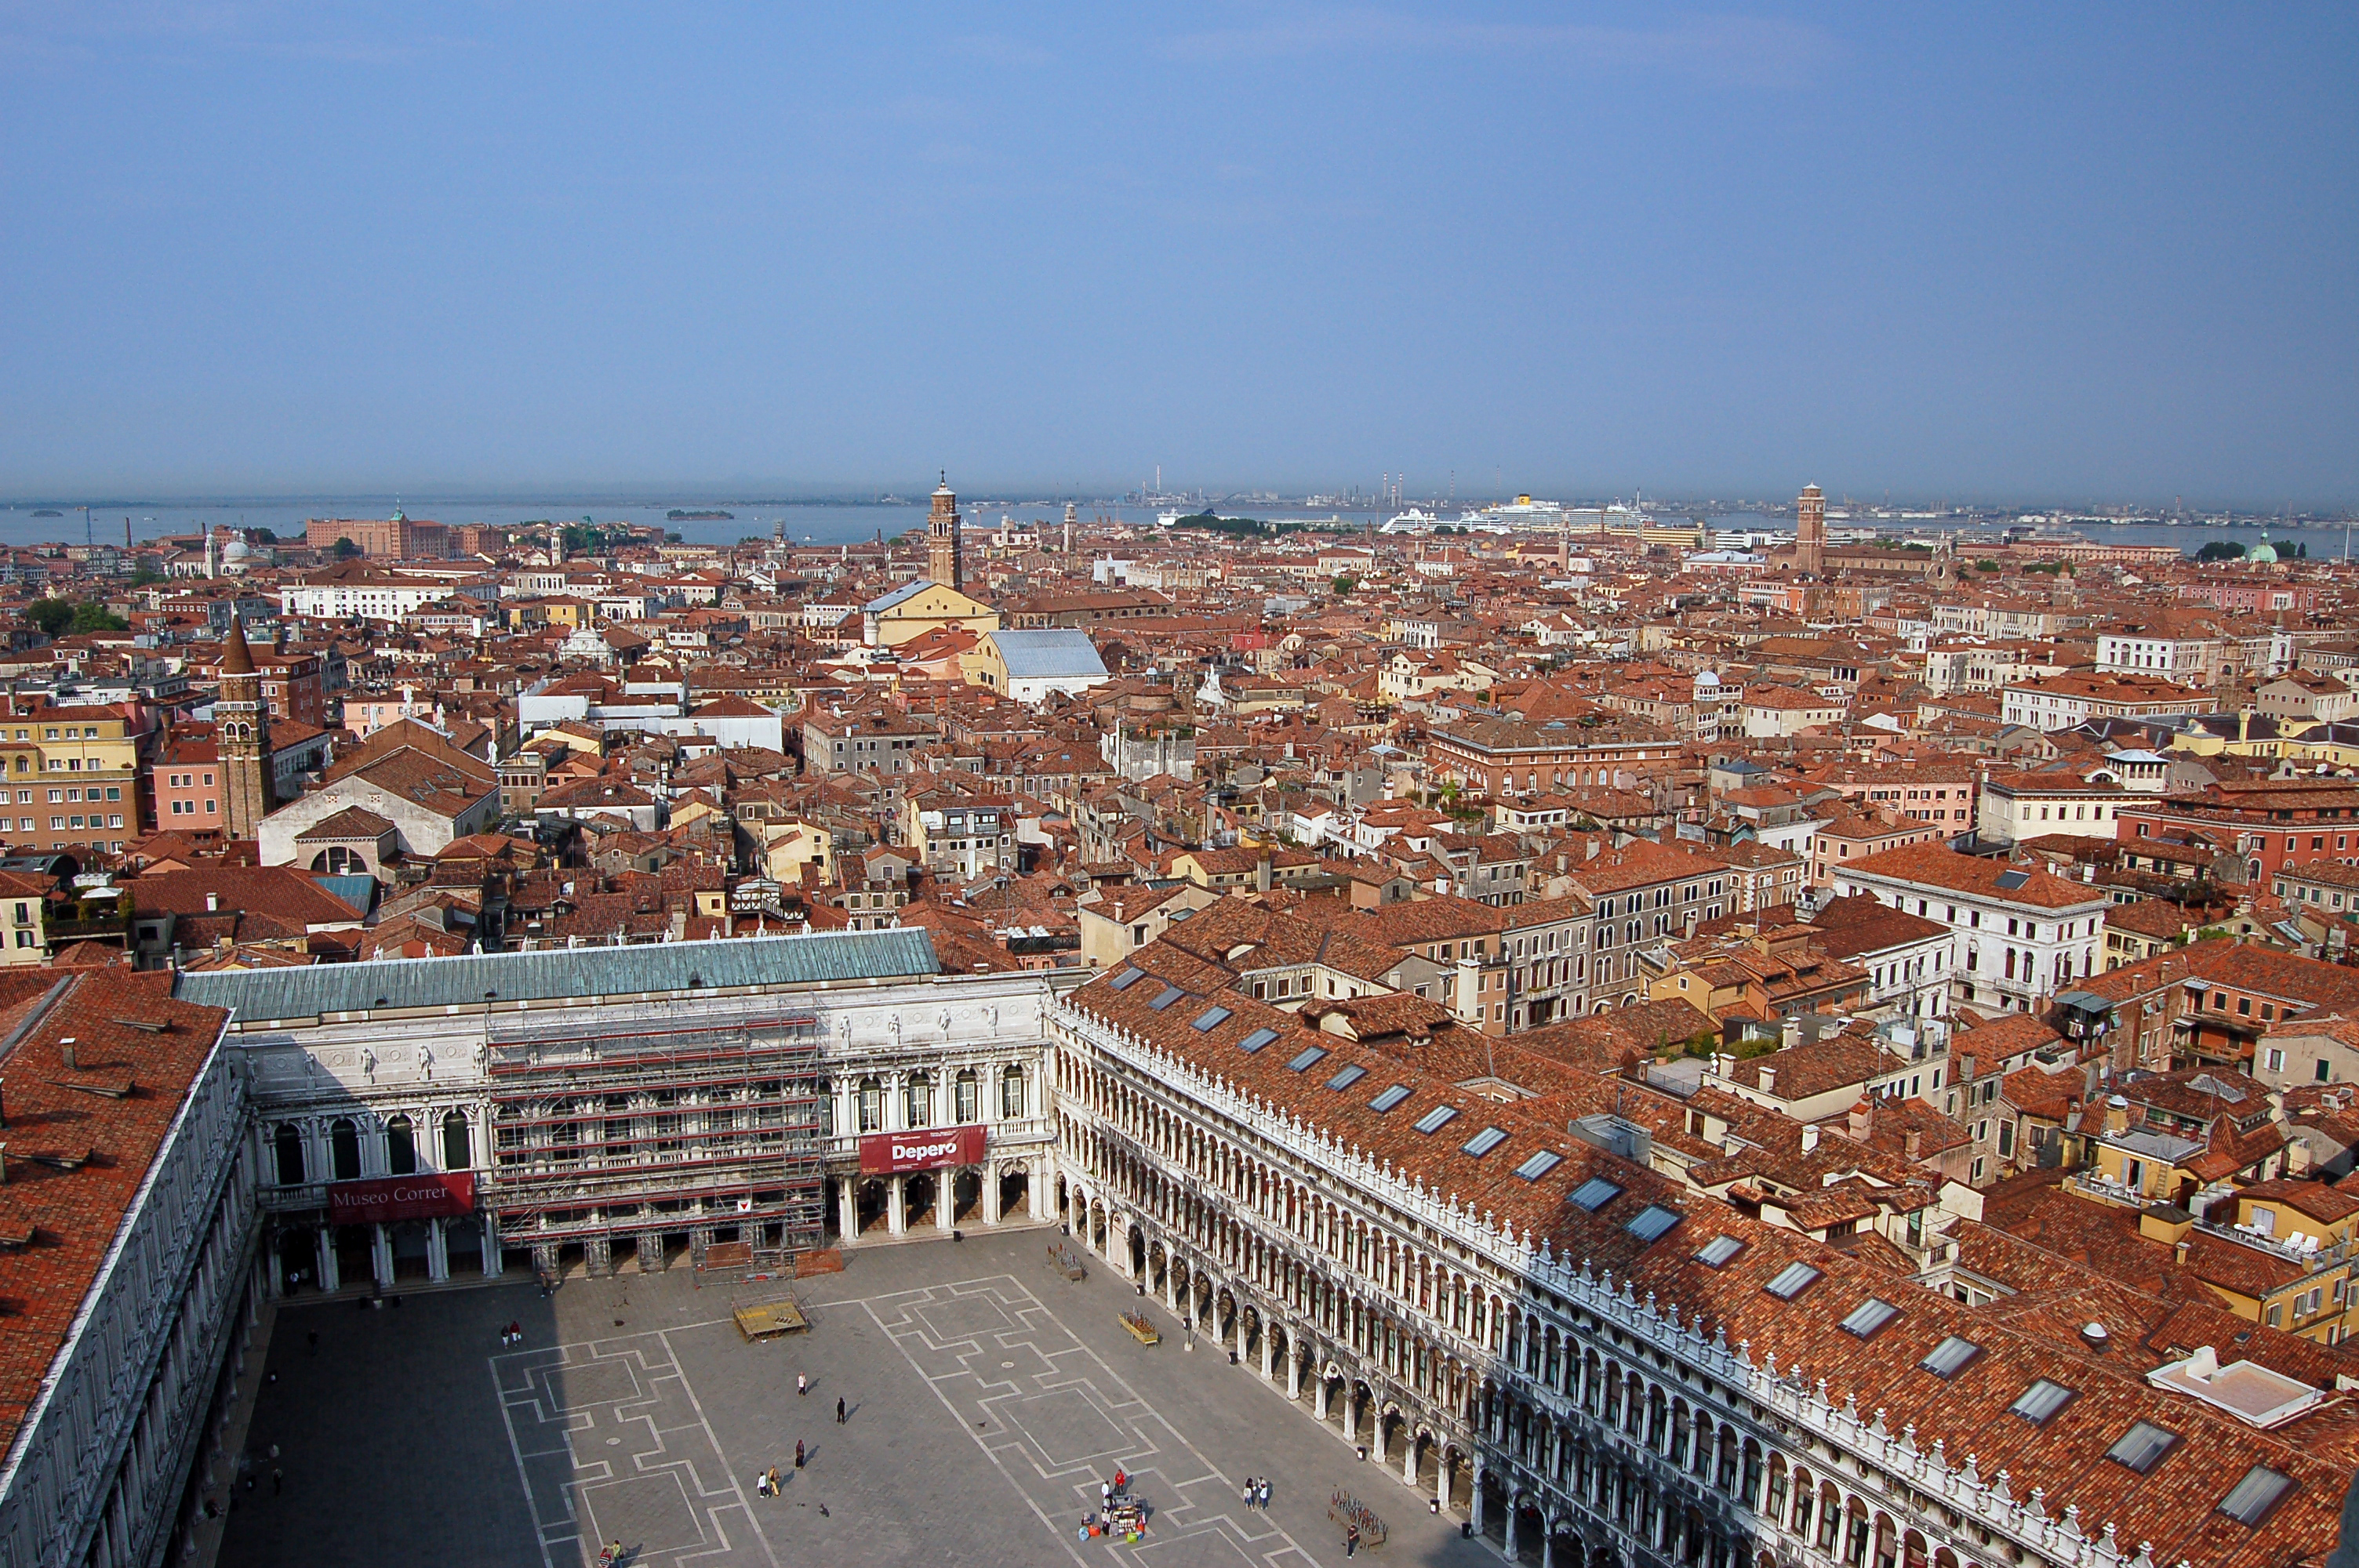 File:View of San Marco, Venice (3501170892).jpg - Wikimedia Commons